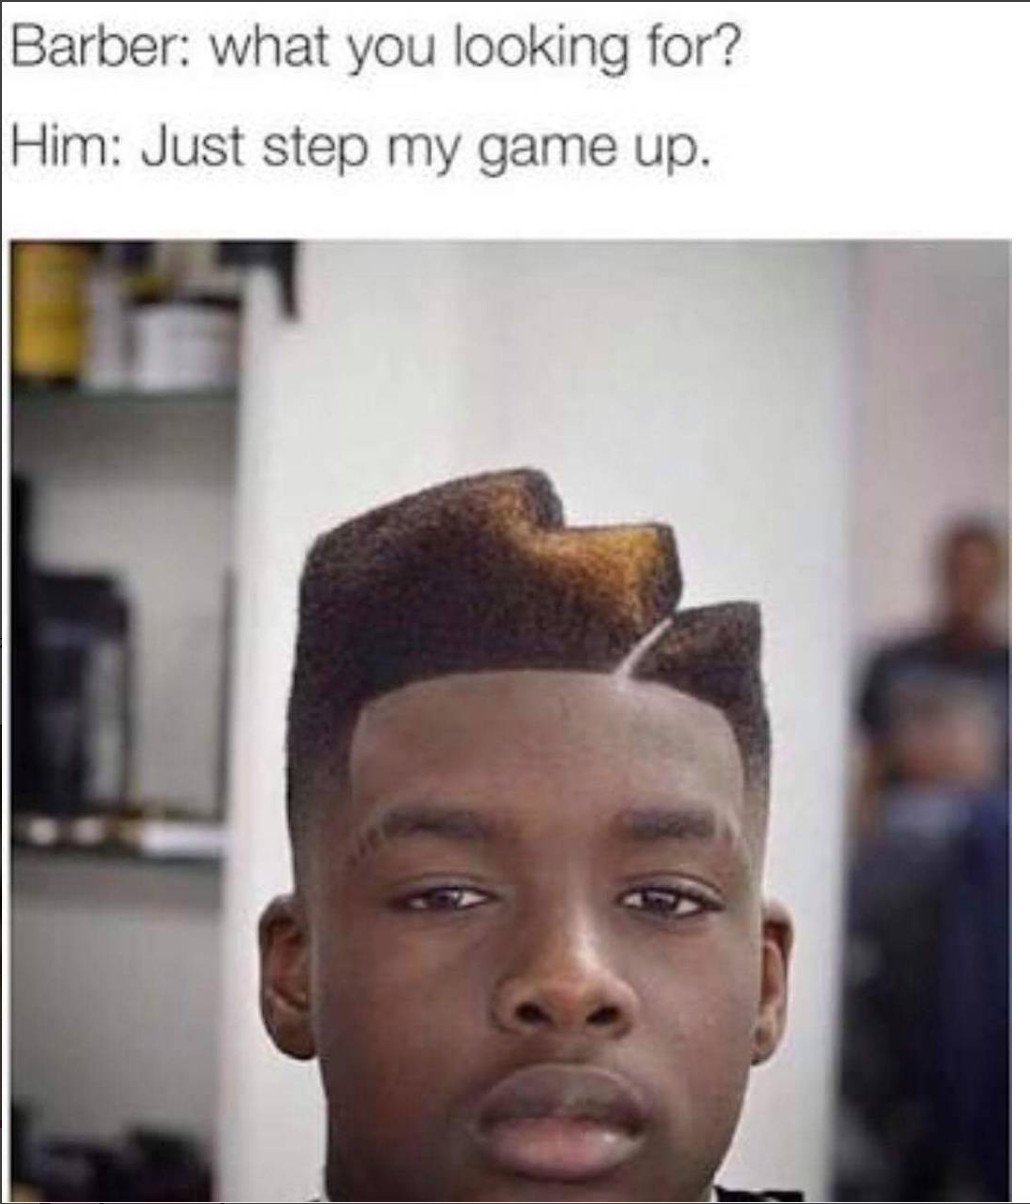 new haircut meme haircuts for them cool haircut talkstoday meme 3478